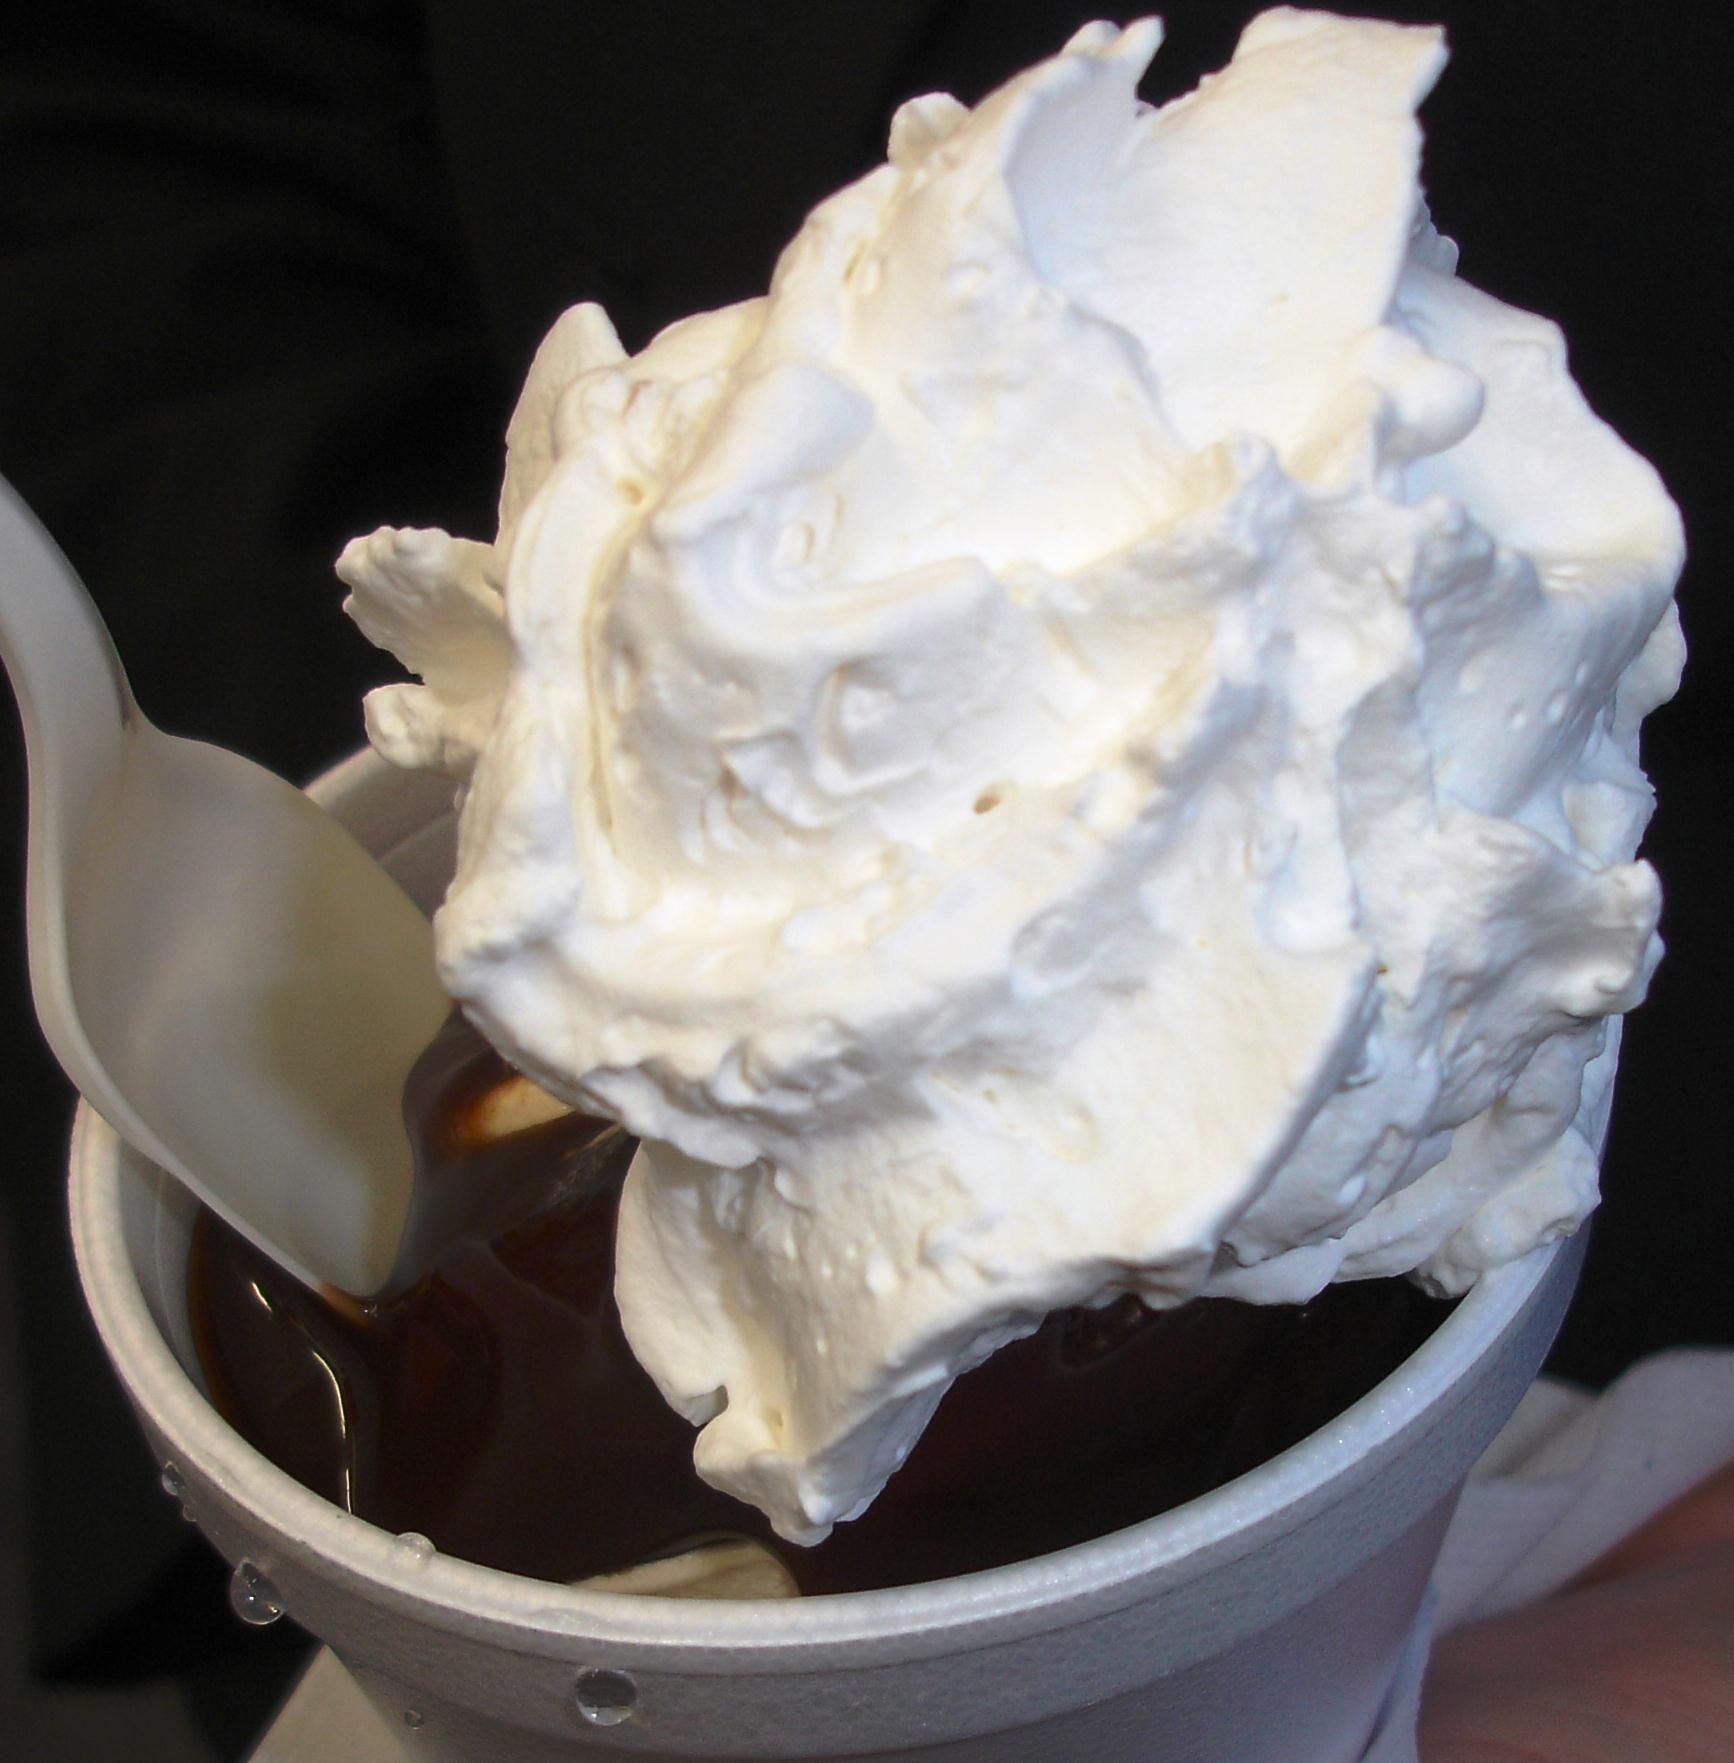 Our hot fudge sundae was made with coffee soft serve.